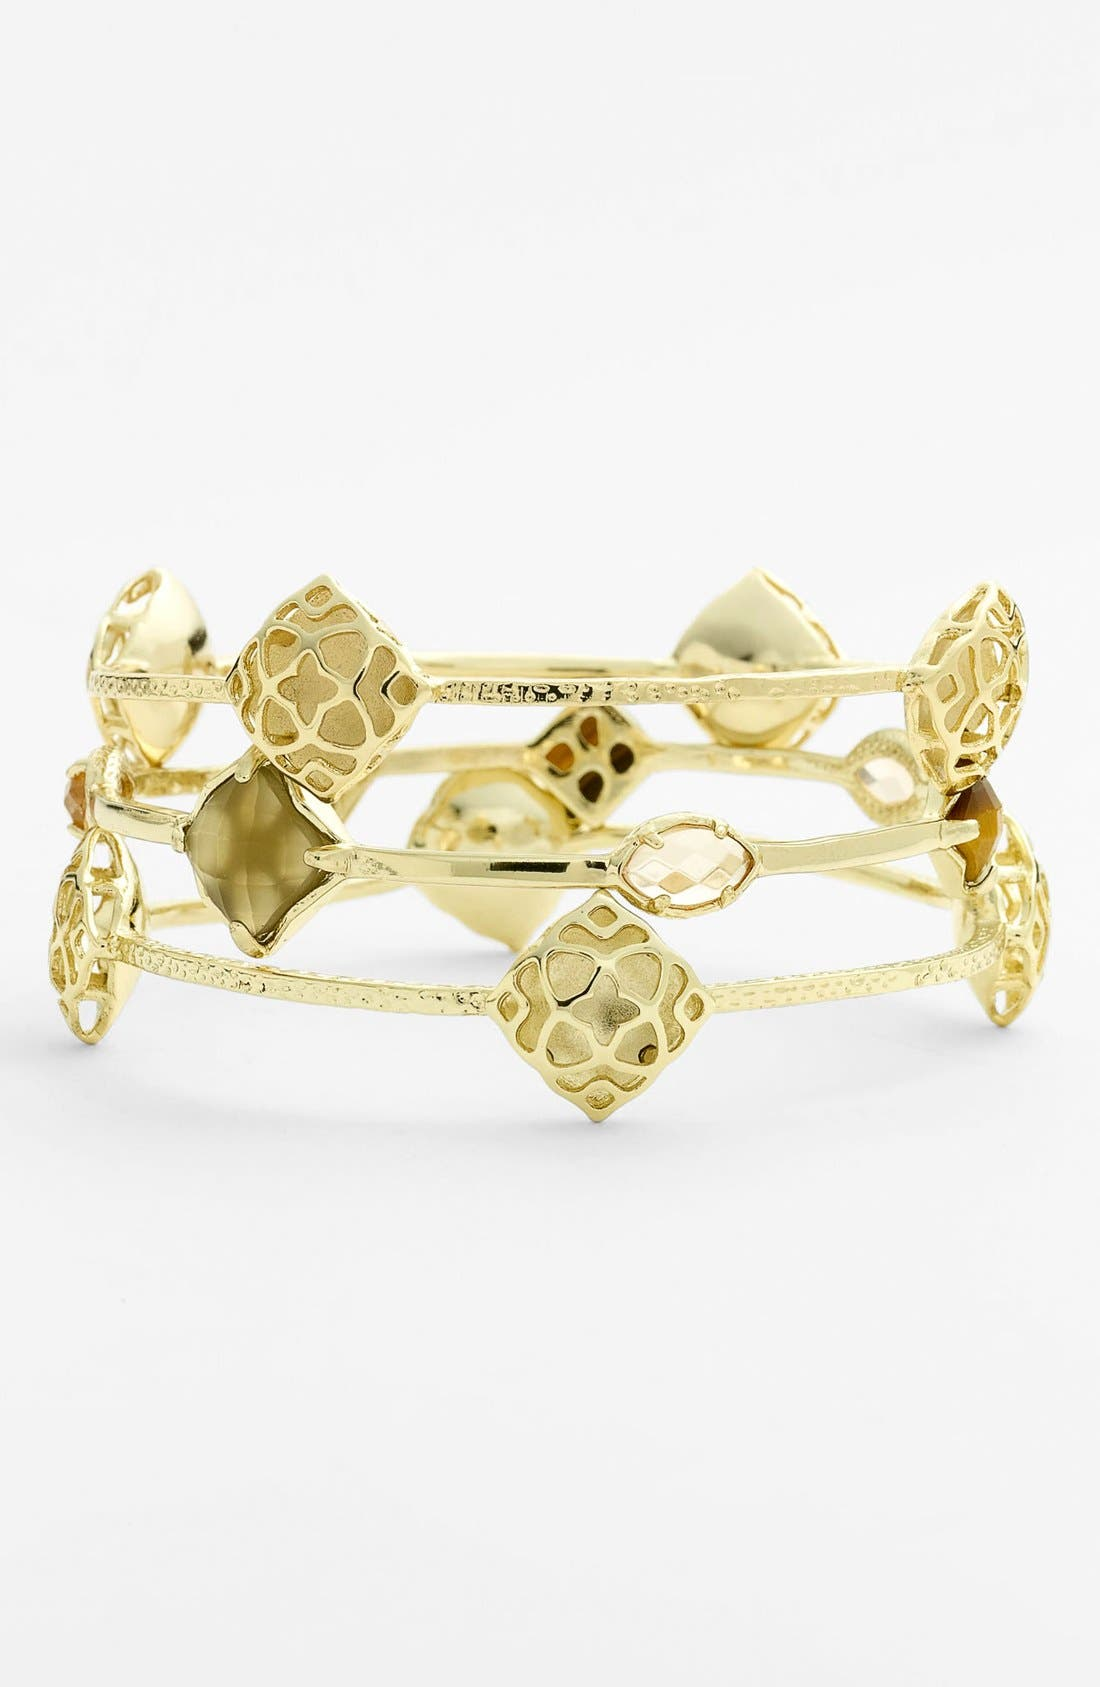 Alternate Image 1 Selected - Kendra Scott 'Island Escapade - Marty' Station Bangles (Set of 3) (Nordstrom Exclusive)